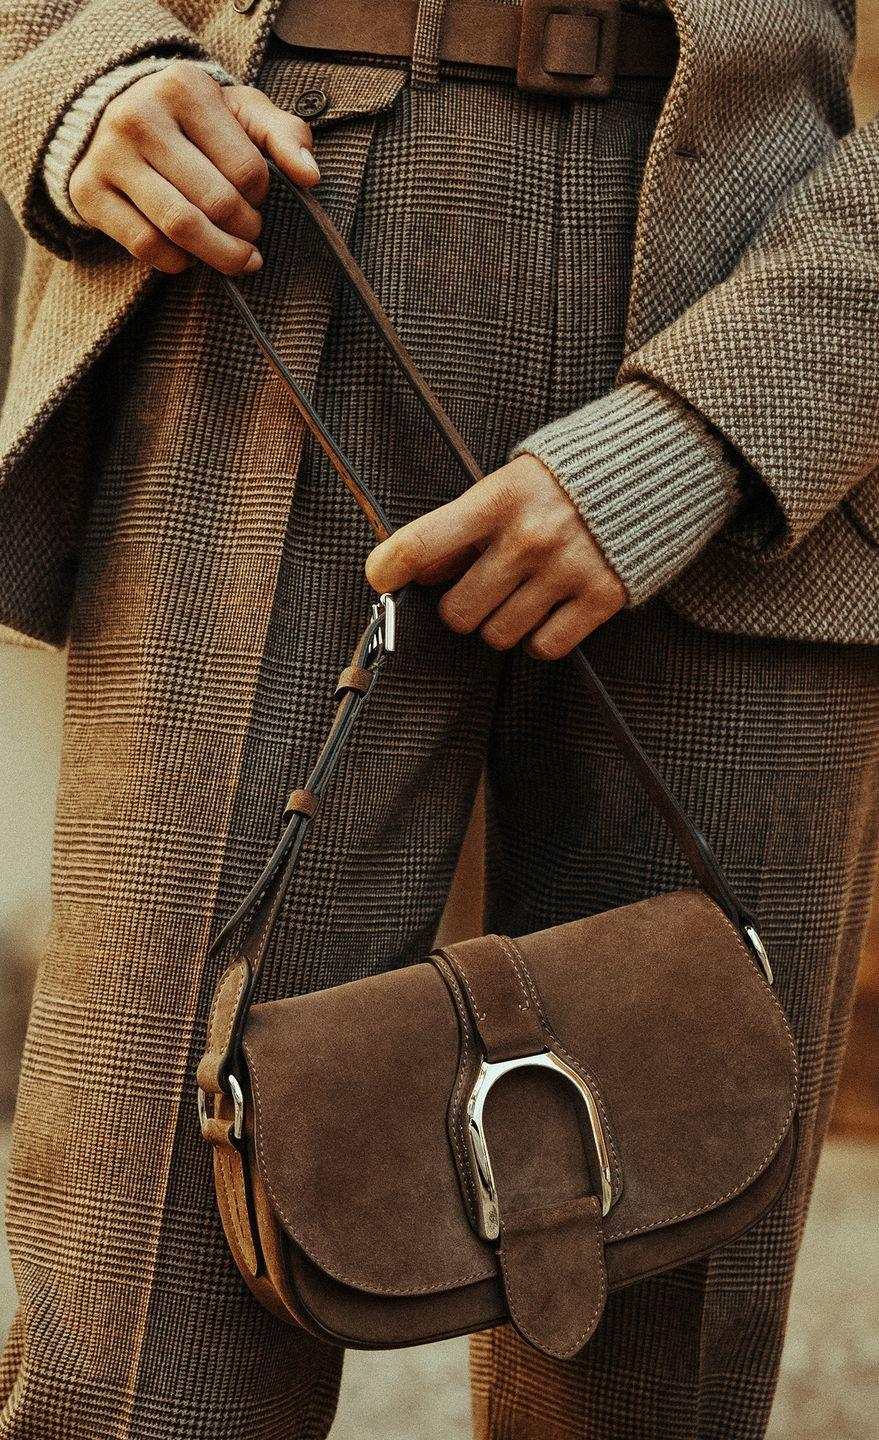 """<p><strong>Who: </strong>Ralph Lauren </p><p><strong>What: </strong>The Welington accessory collection </p><p><strong>Where:</strong> Online at <a href=""""https://go.redirectingat.com?id=74968X1596630&url=https%3A%2F%2Fwww.ralphlauren.com%2F&sref=https%3A%2F%2Fwww.elle.com%2Ffashion%2Fshopping%2Fg37500051%2Fthe-launch-septembers-hottest-fashion-launches%2F"""" rel=""""nofollow noopener"""" target=""""_blank"""" data-ylk=""""slk:ralphlauren.com"""" class=""""link rapid-noclick-resp"""">ralphlauren.com</a> and in Ralph Lauren stores worldwide</p><p><strong>Why:</strong> Icon of American style Ralph Lauren pulls inspiration from the timelessness of equestrian saddlery to create the Welington collection: a series of handbags, shoes, belts, small leather goods, watches, and jewelry that feature an instantly recognizable stirrup motif. Lauren gave the classic riding boot a contemporary edge, shortening its shaft height to make it a more wearable bootie. The sensible yet stylish block heel and almond-shaped toe render it a must-have for the fall season. Bonus: the brass stirrup on the outer ankle ensures this shoe is just as suited for the racetrack as it is the city street.</p><p><a class=""""link rapid-noclick-resp"""" href=""""https://go.redirectingat.com?id=74968X1596630&url=https%3A%2F%2Fwww.ralphlauren.com%2Fralph-lauren-collection-welington-cg%3Fwebcat%3Dwomen%257Cfeatured%257CCollection%2BWelington%26orignalCatID%3Dralph-lauren-collection-welington-rd%26altrurlID%3Dralph-lauren-collection-welington-rd&sref=https%3A%2F%2Fwww.elle.com%2Ffashion%2Fshopping%2Fg37500051%2Fthe-launch-septembers-hottest-fashion-launches%2F"""" rel=""""nofollow noopener"""" target=""""_blank"""" data-ylk=""""slk:SHOP NOW"""">SHOP NOW</a></p>"""